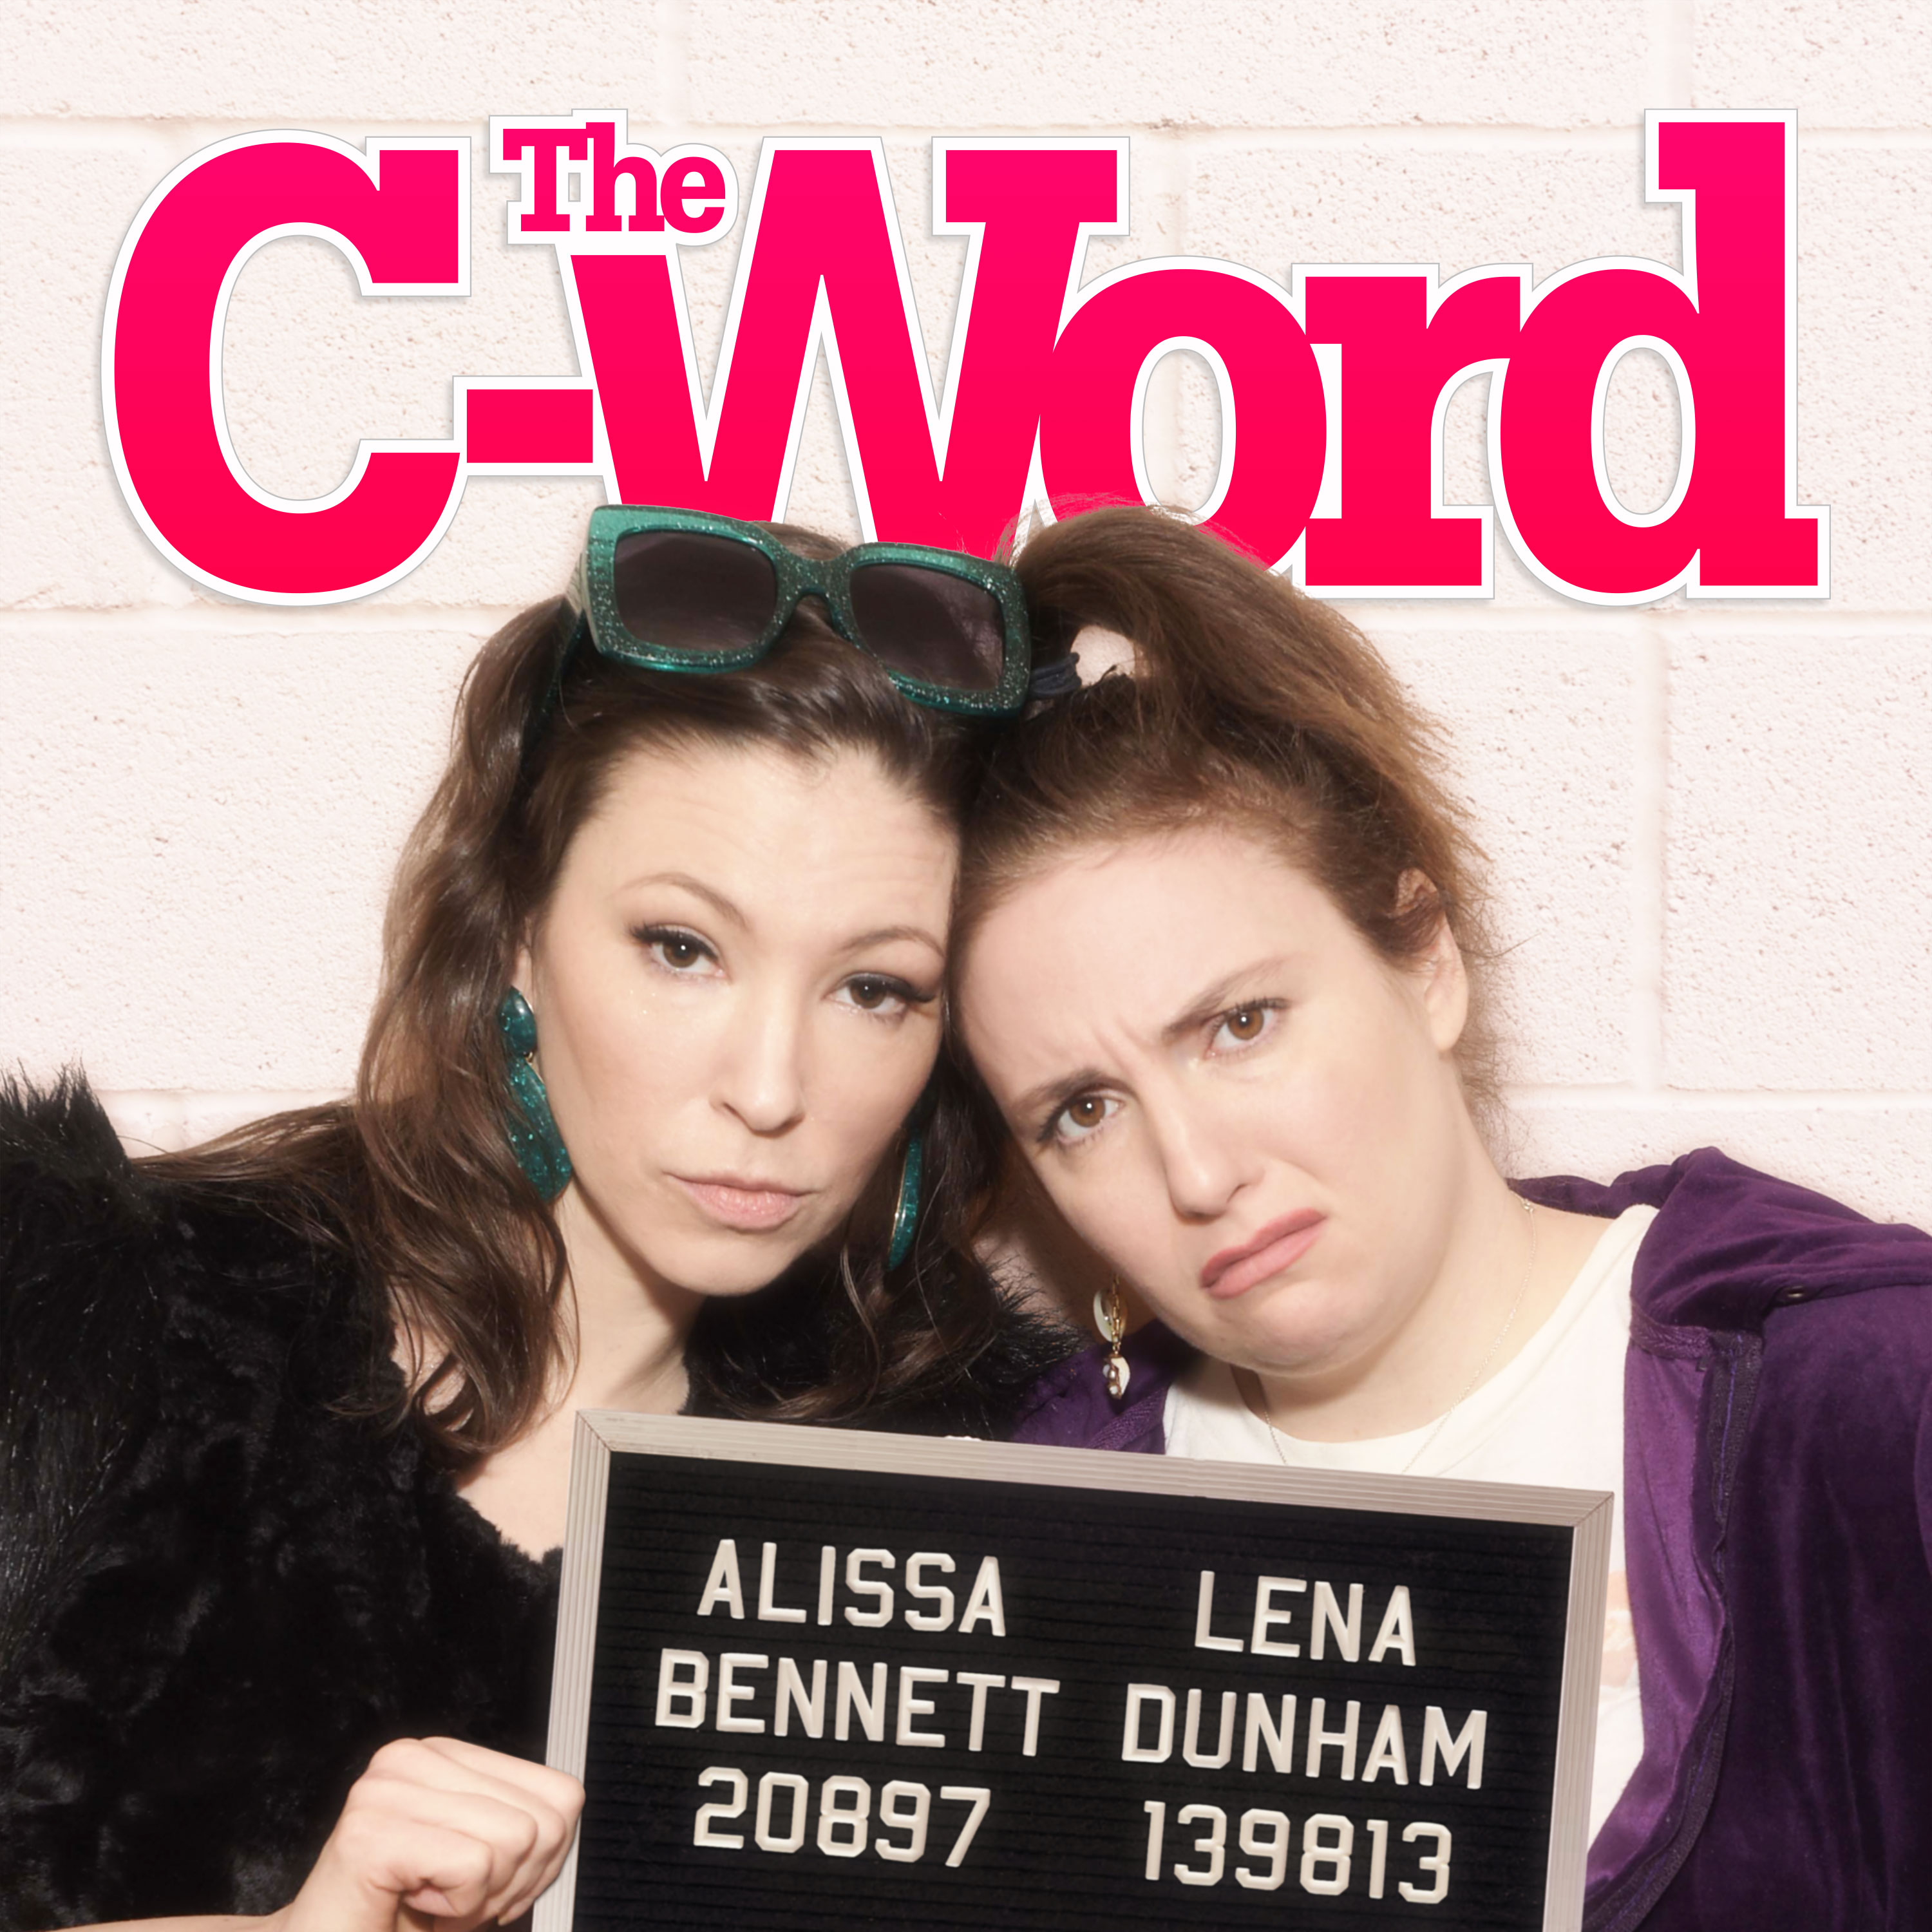 down-to-earth-podcasts-worth-downloading_lena_dunham